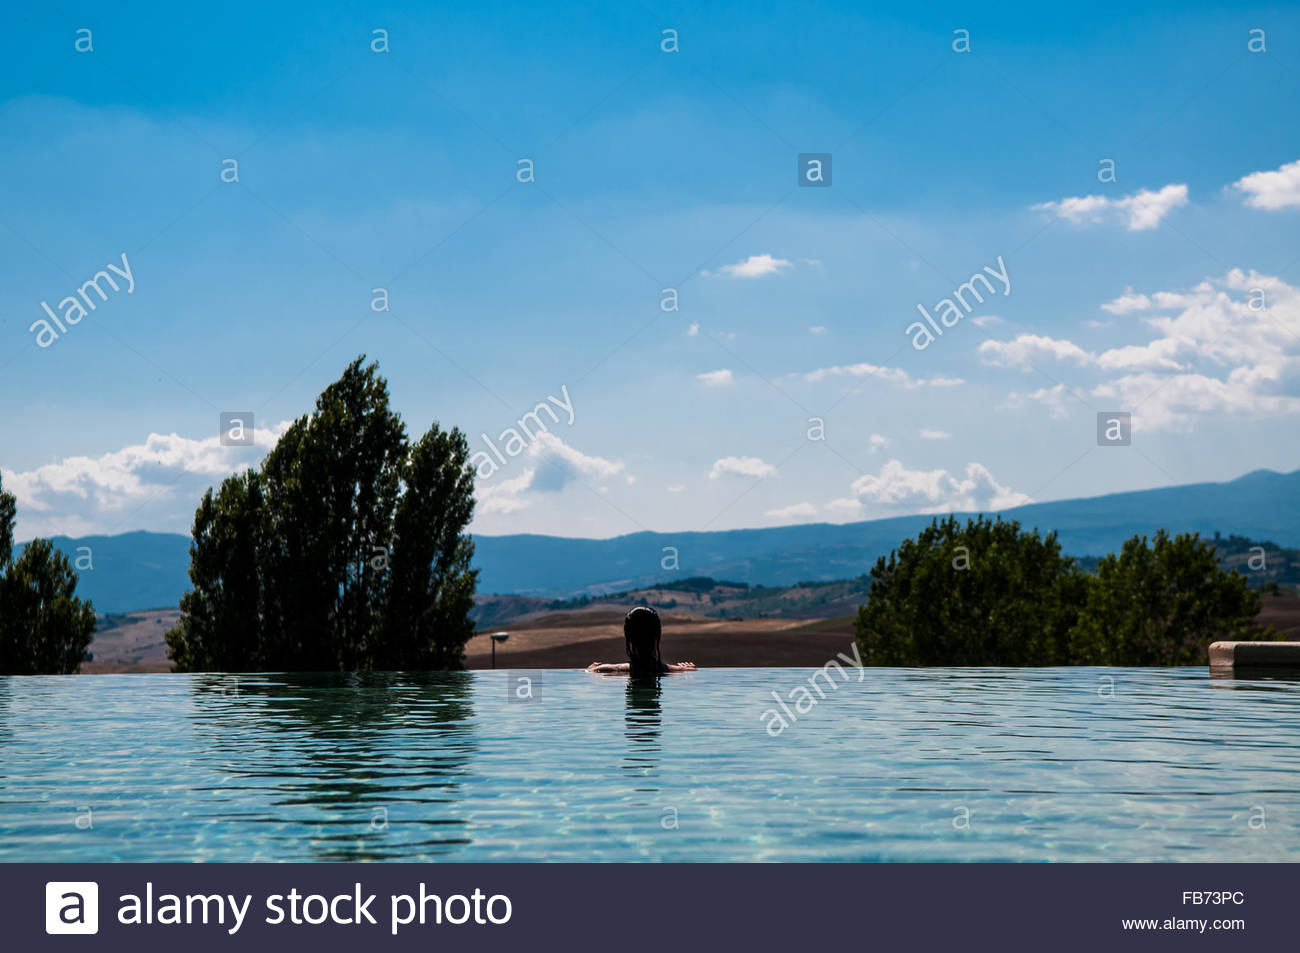 https://c8.alamy.com/compde/fb73pc/pool-fonteverde-terme-san-casciano-dei-bagni-italien-fb73pc.jpg